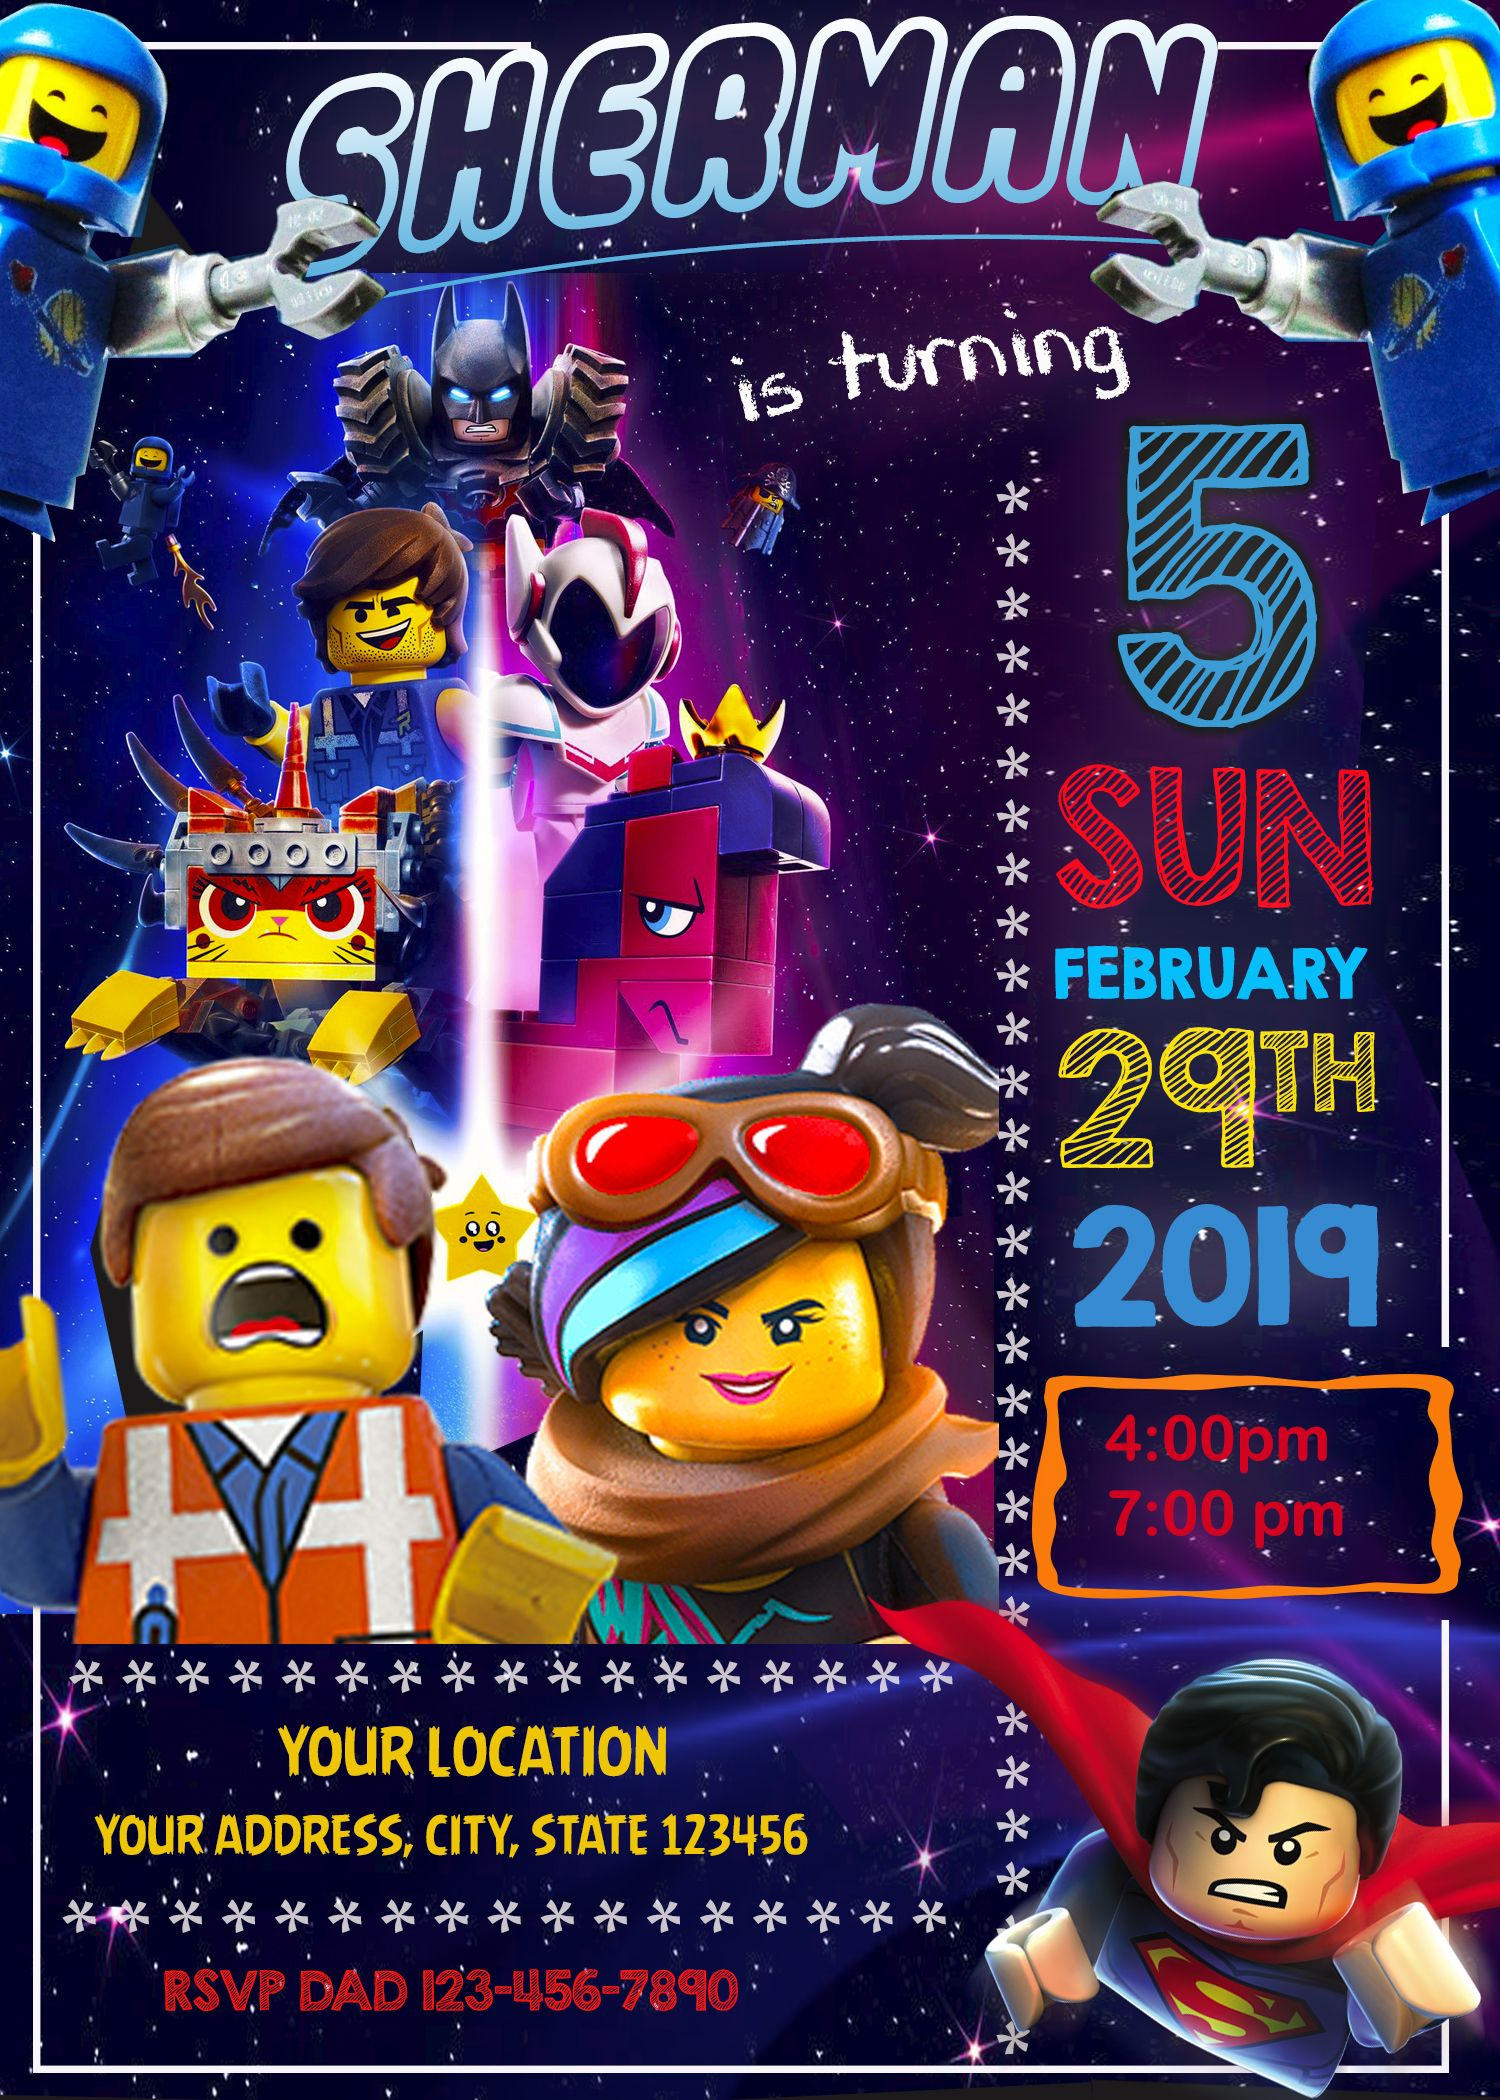 Lego Movie 2 Birthday Invitation Oscarsitosroom Producto